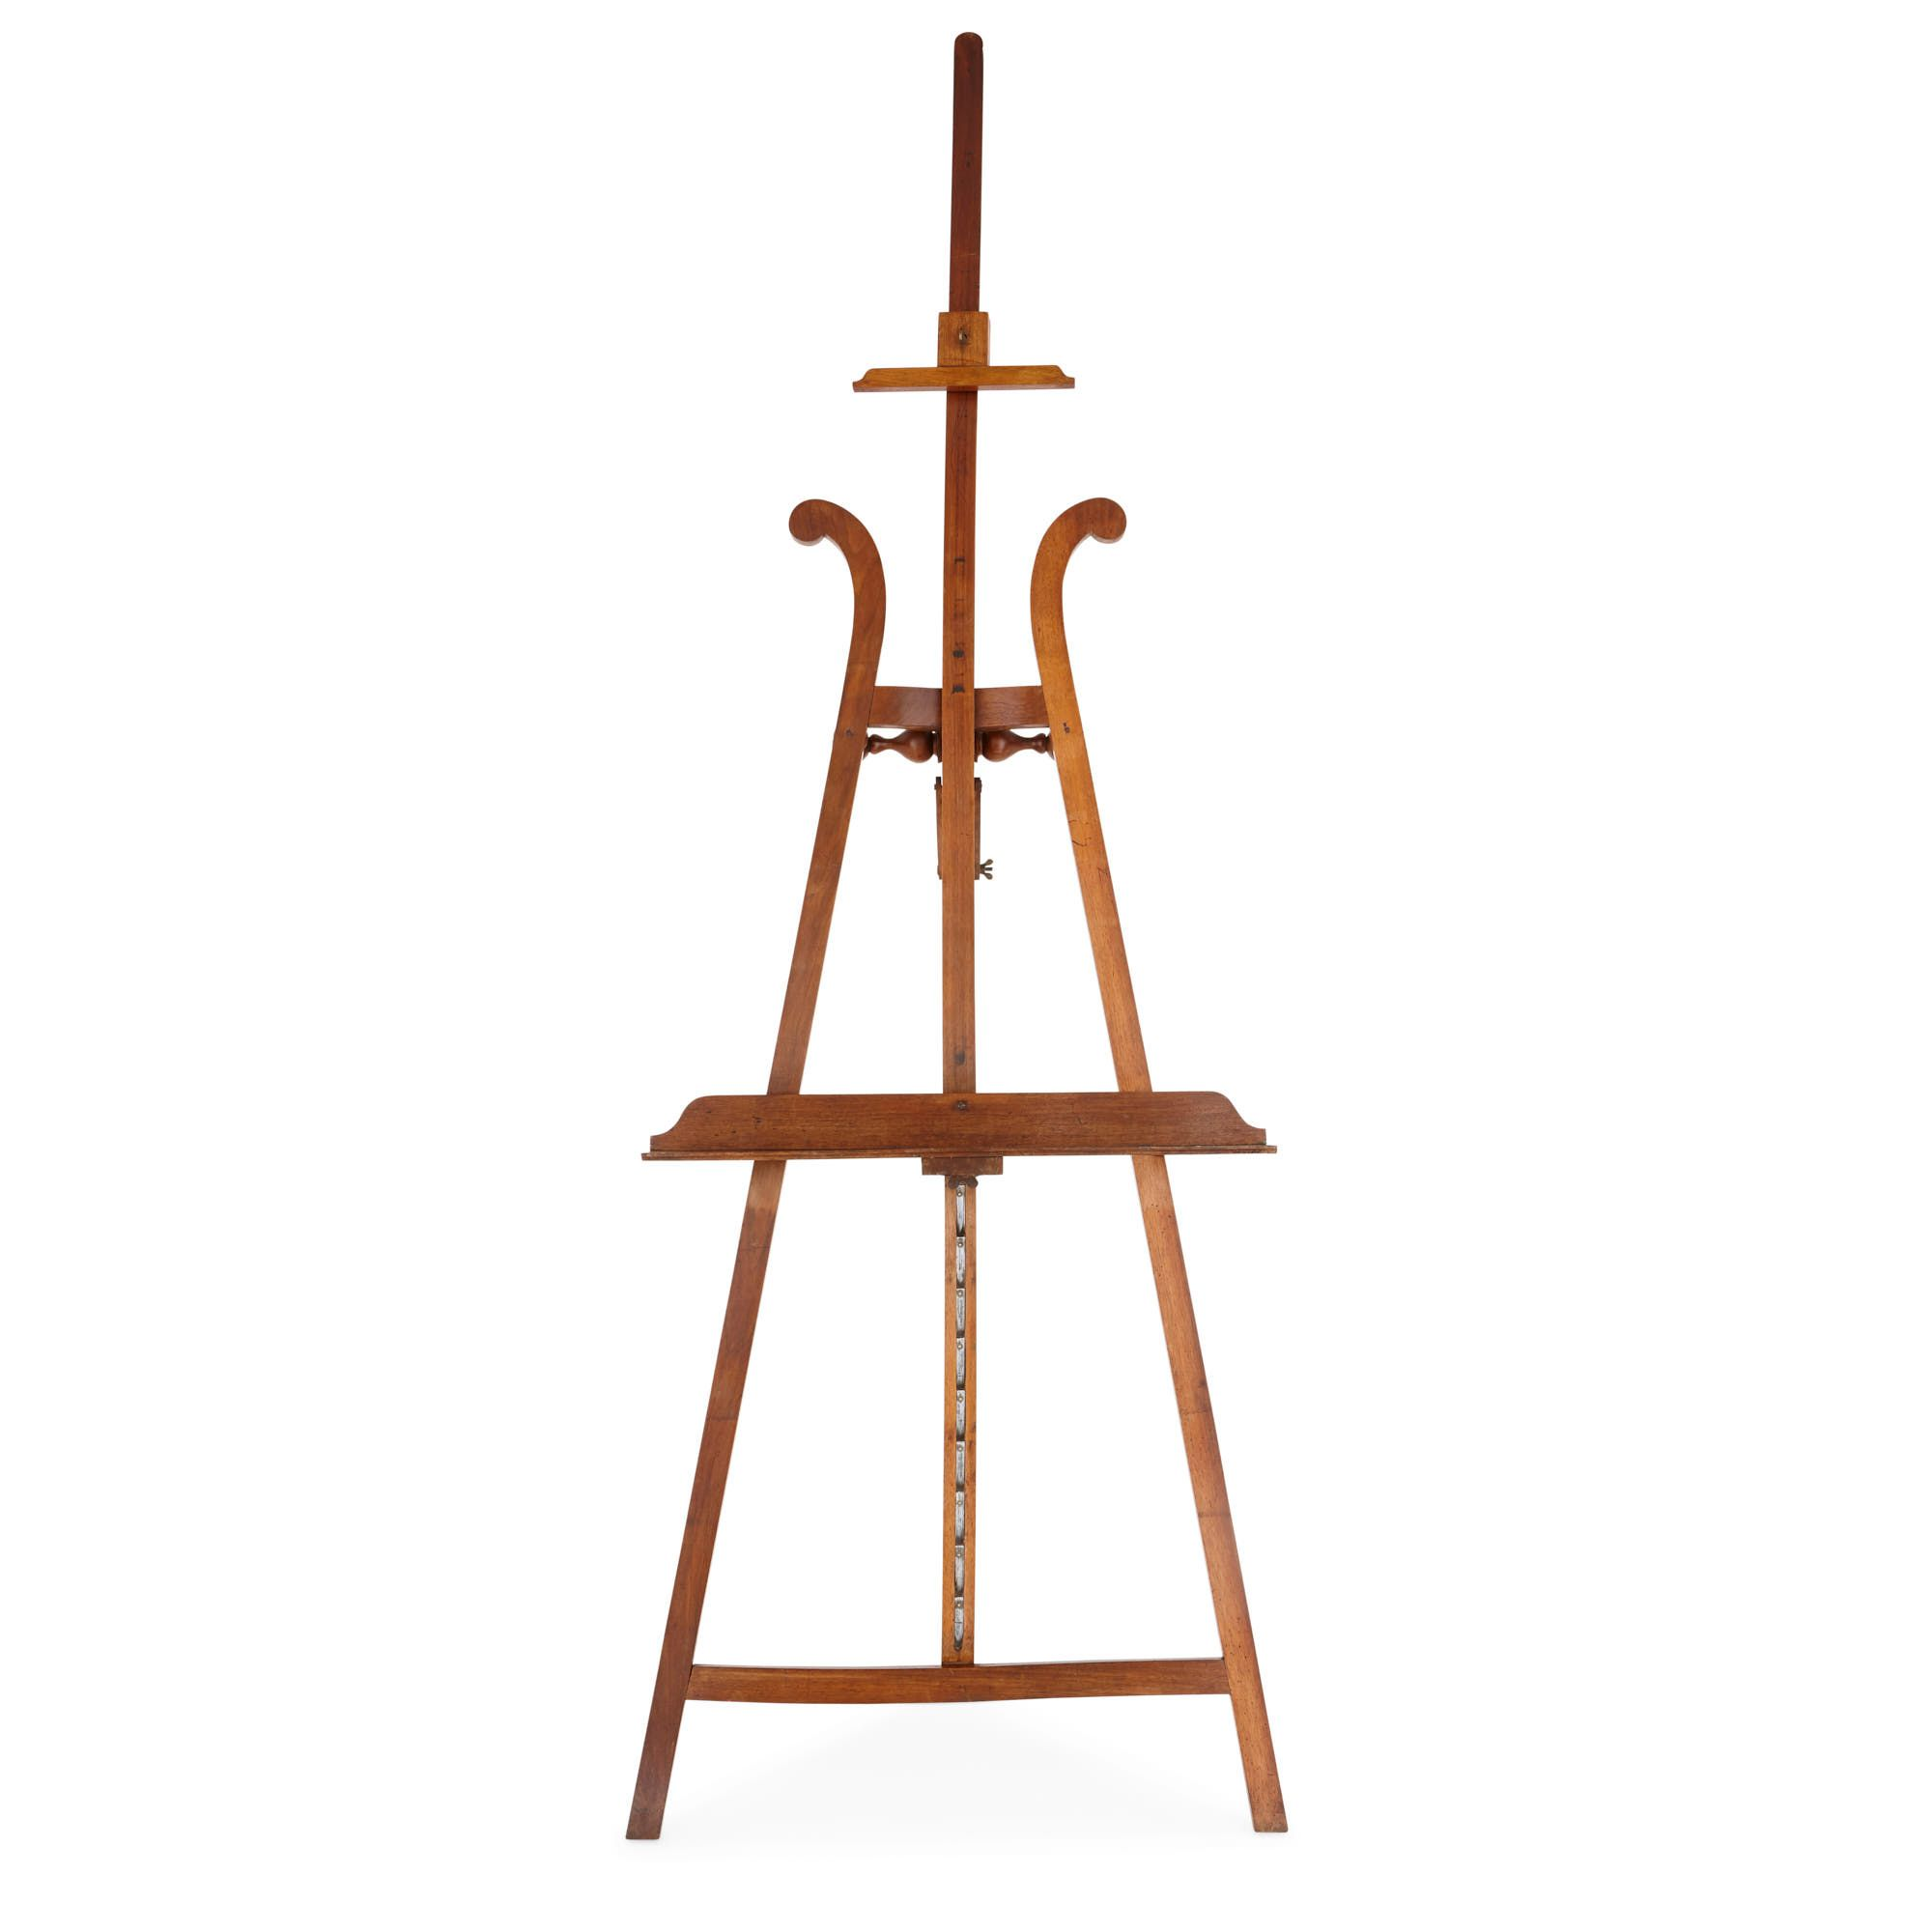 Antique French walnut wood artist's easel   Mayfair Gallery